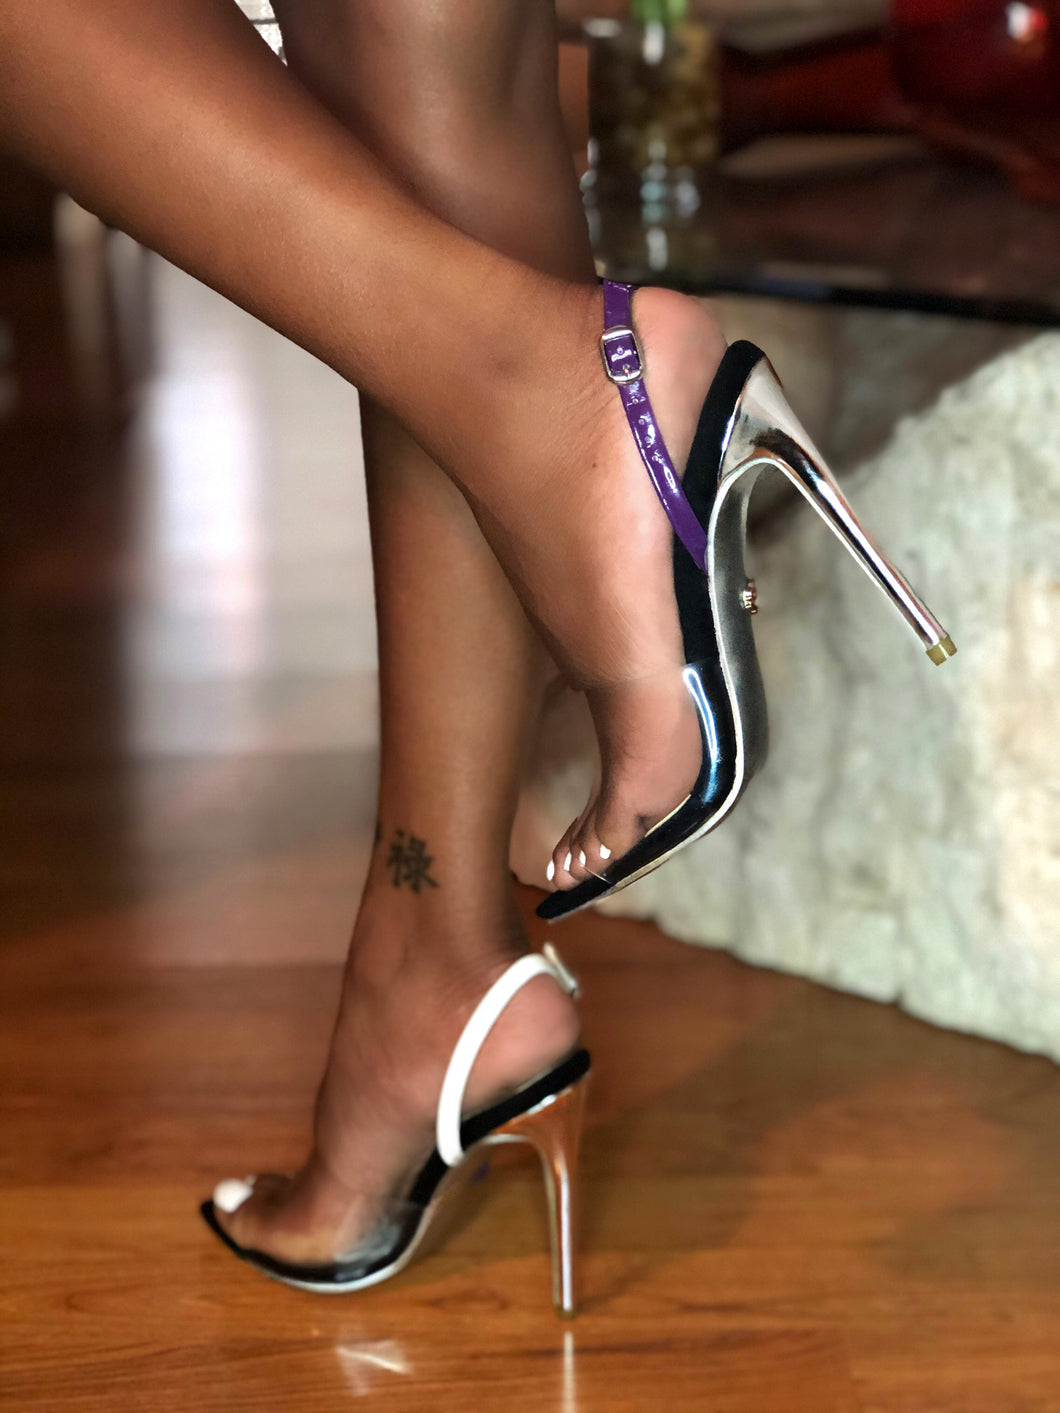 SybG black heels shoes